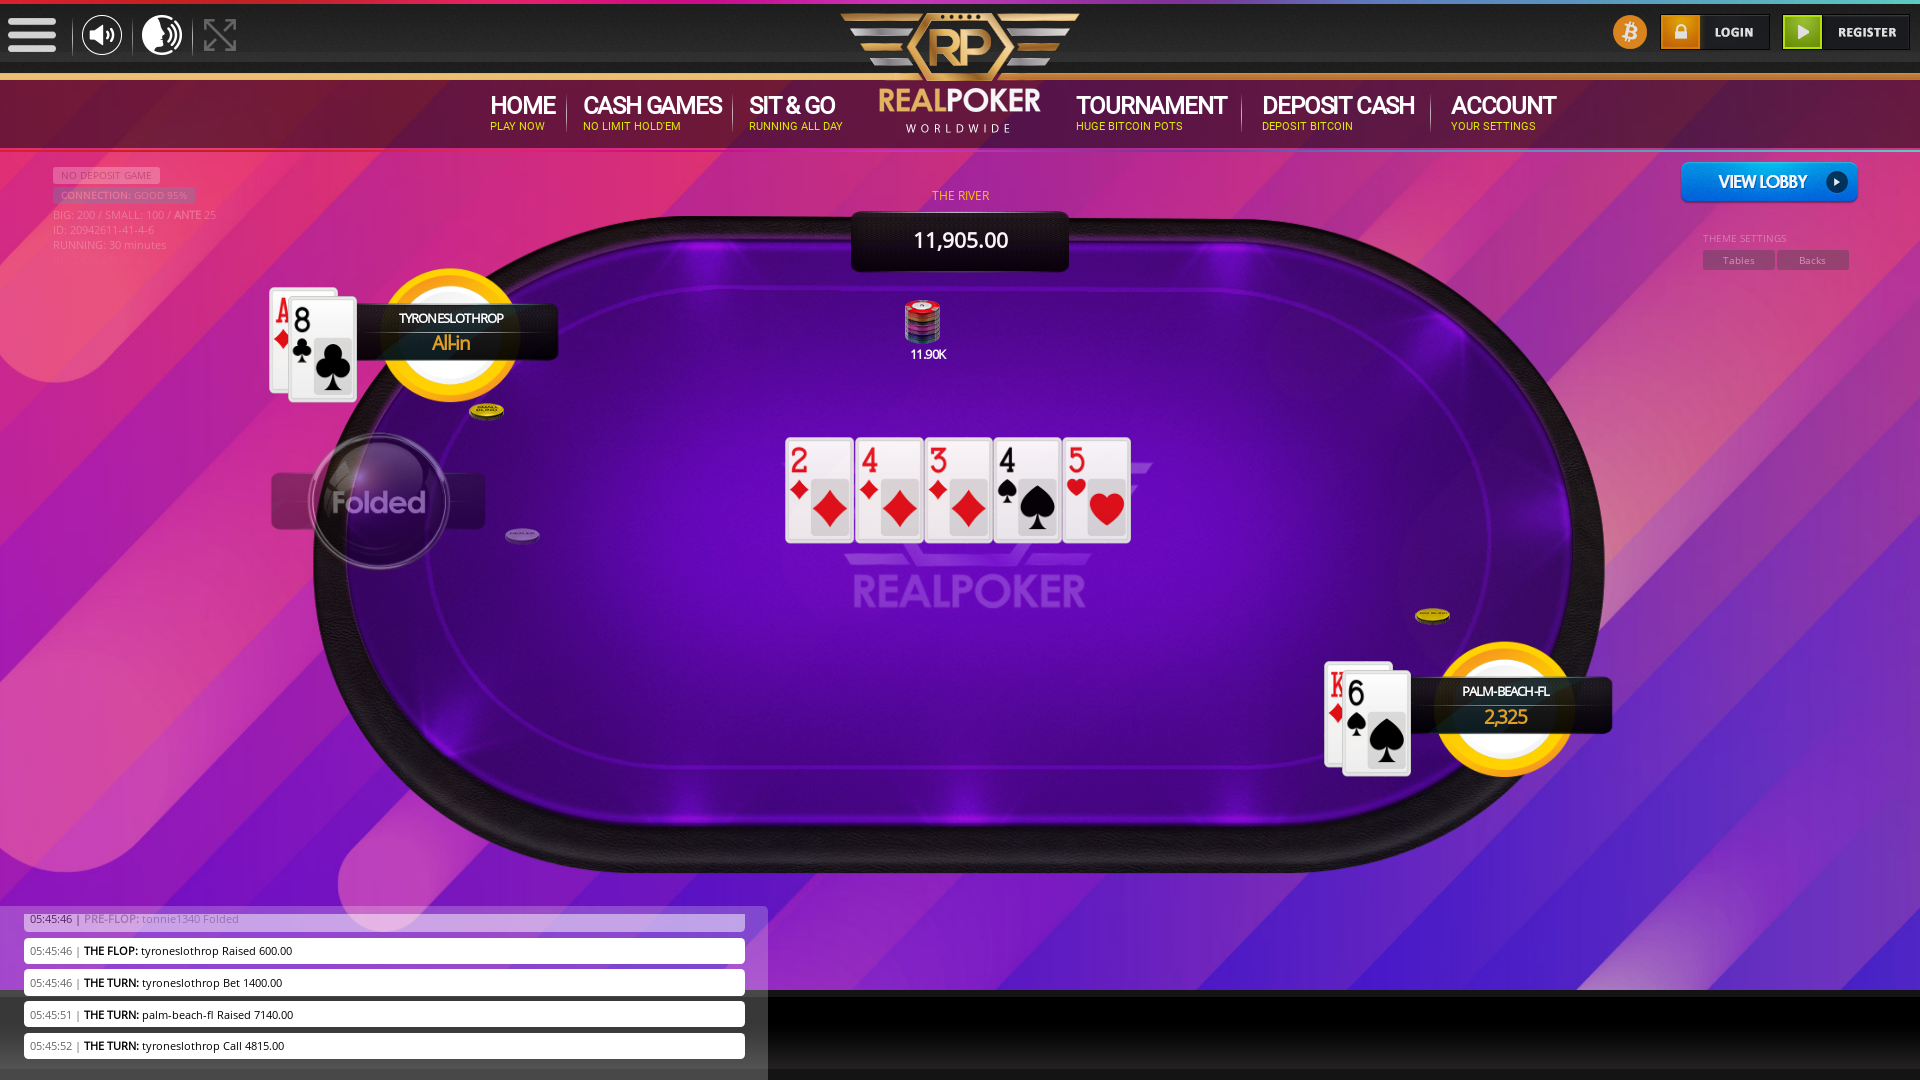 online poker on a 10 player table in the 29th minute match up